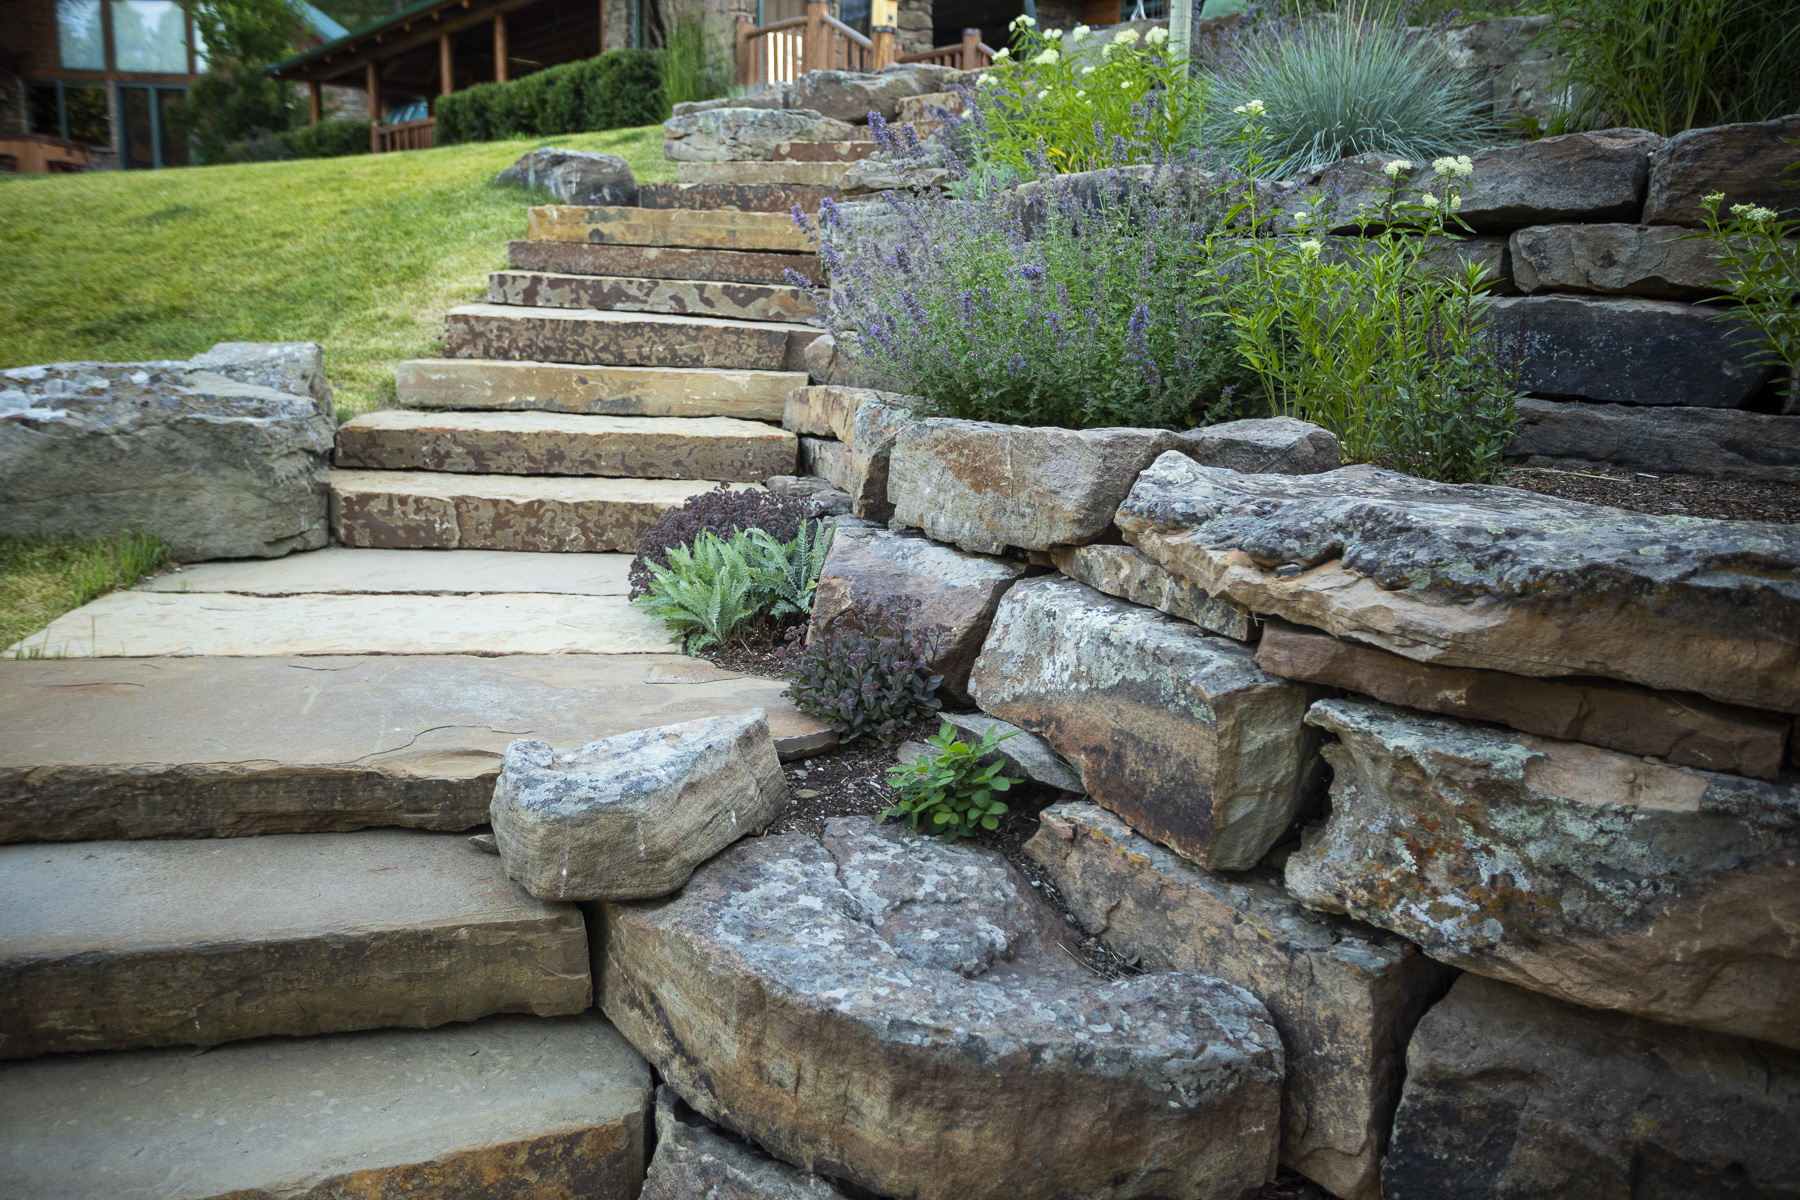 Landscaping along pathway with herbs and edible plants